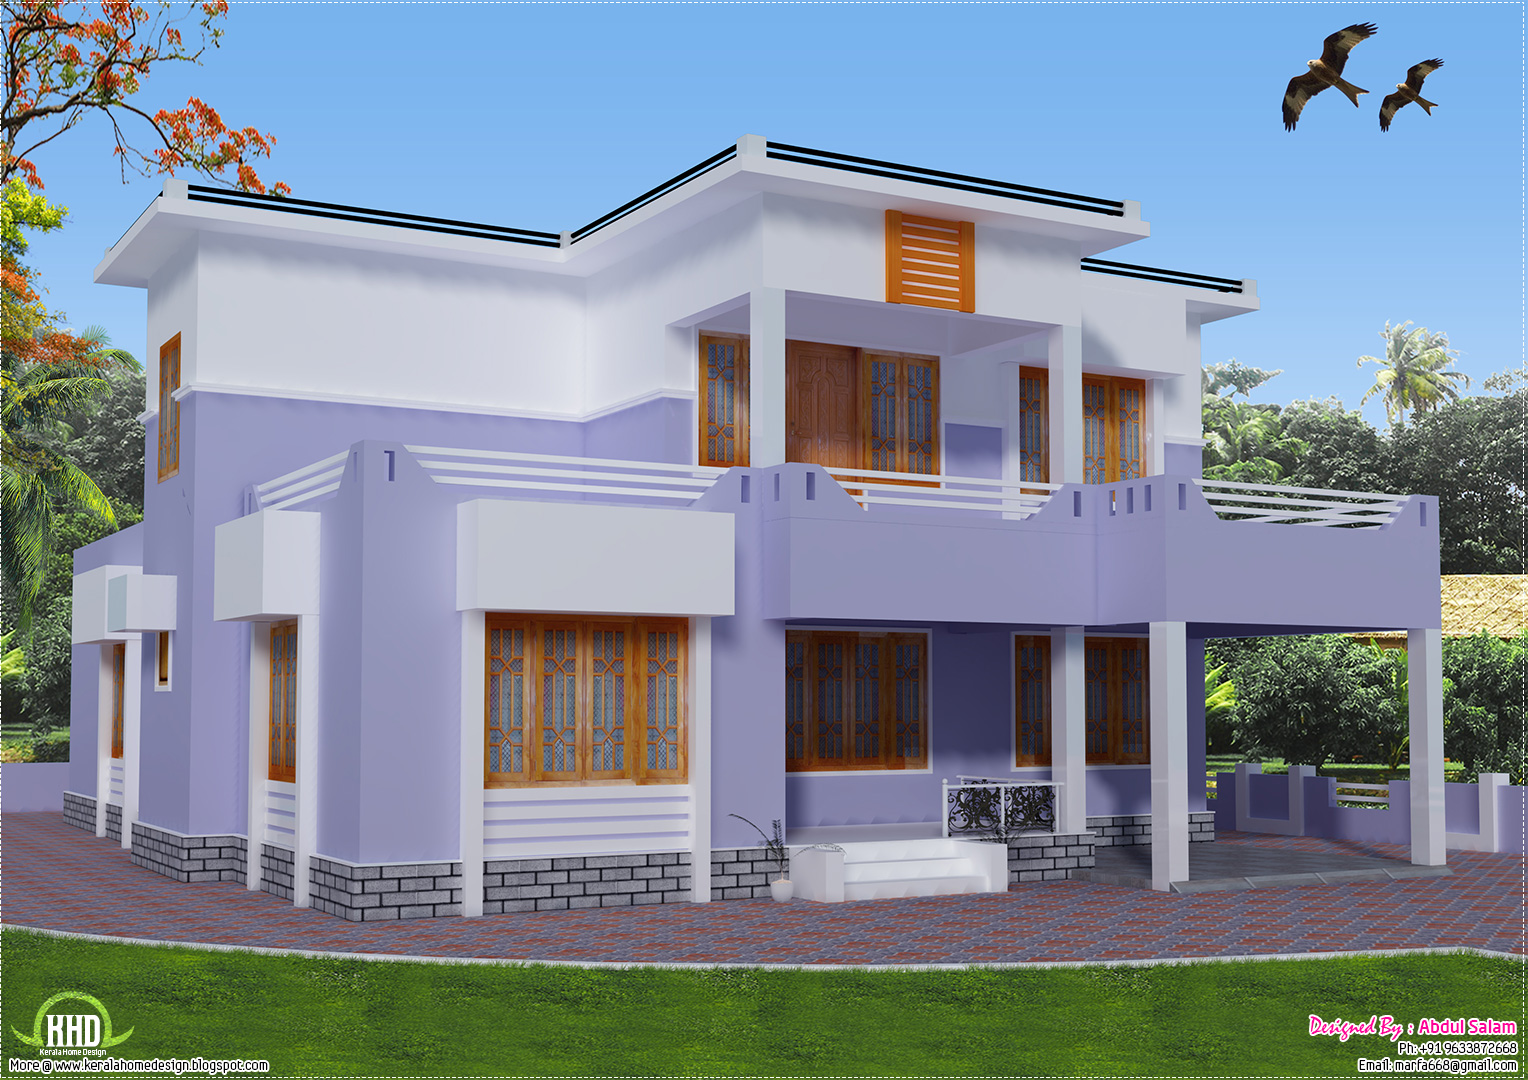 Flat Roof House Designs 1528 x 1080